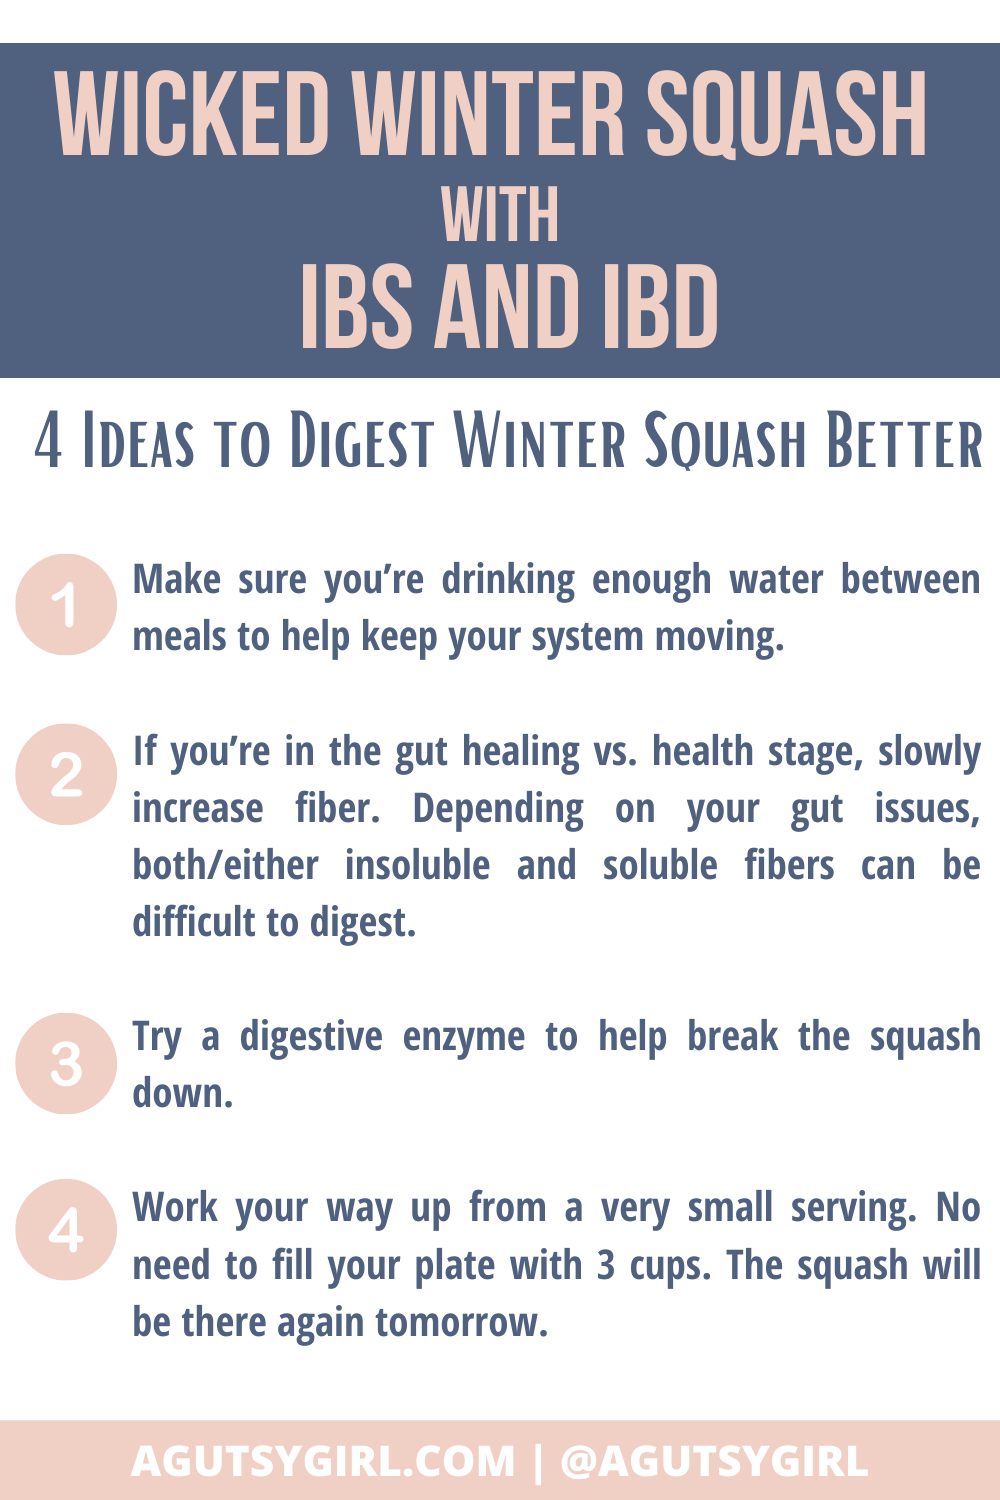 Wicked Winter Squash with IBS and IBD agutsygirl.com #wintersquash #ibs #ibd #guthealth